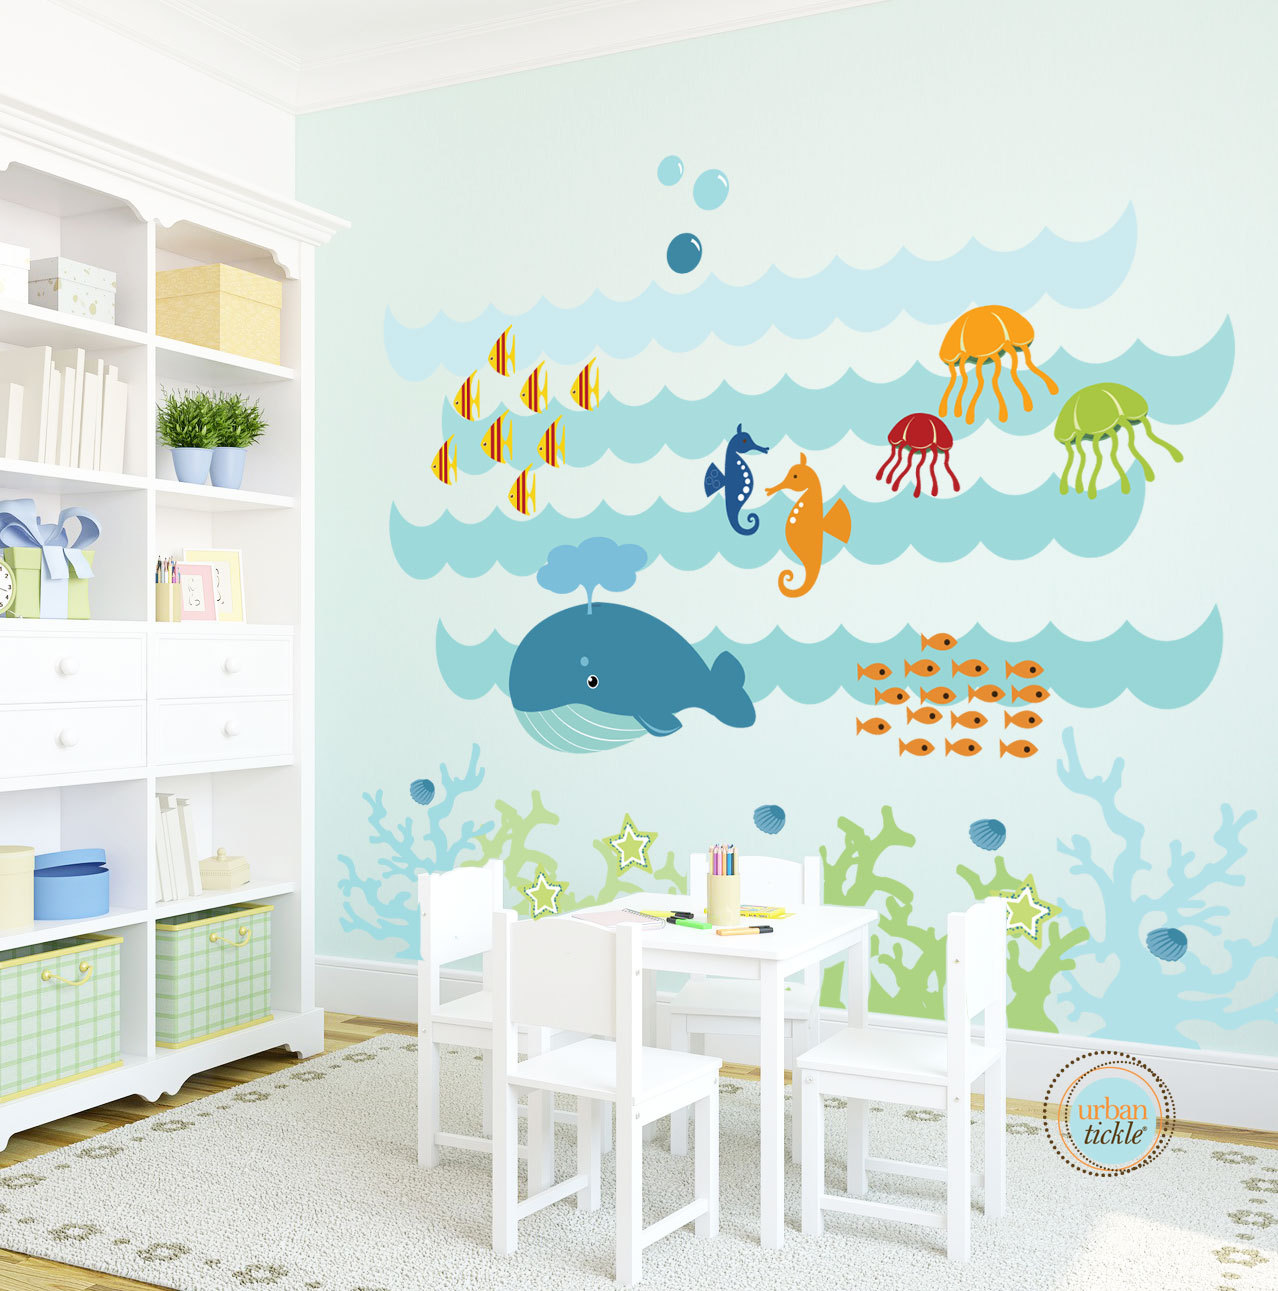 Interesting wall decals